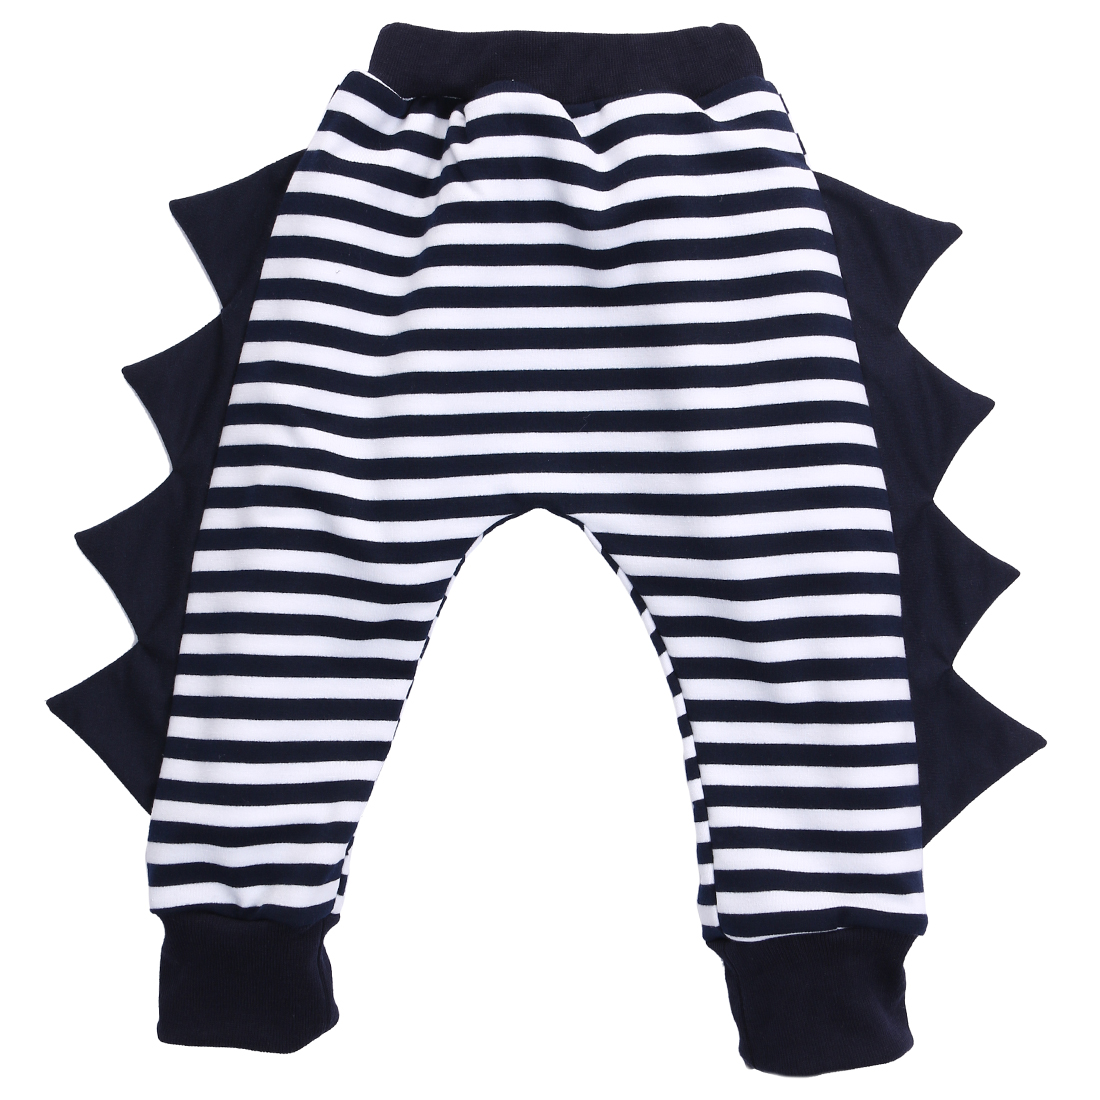 Find great deals on eBay for baby sweatpants. Shop with confidence.